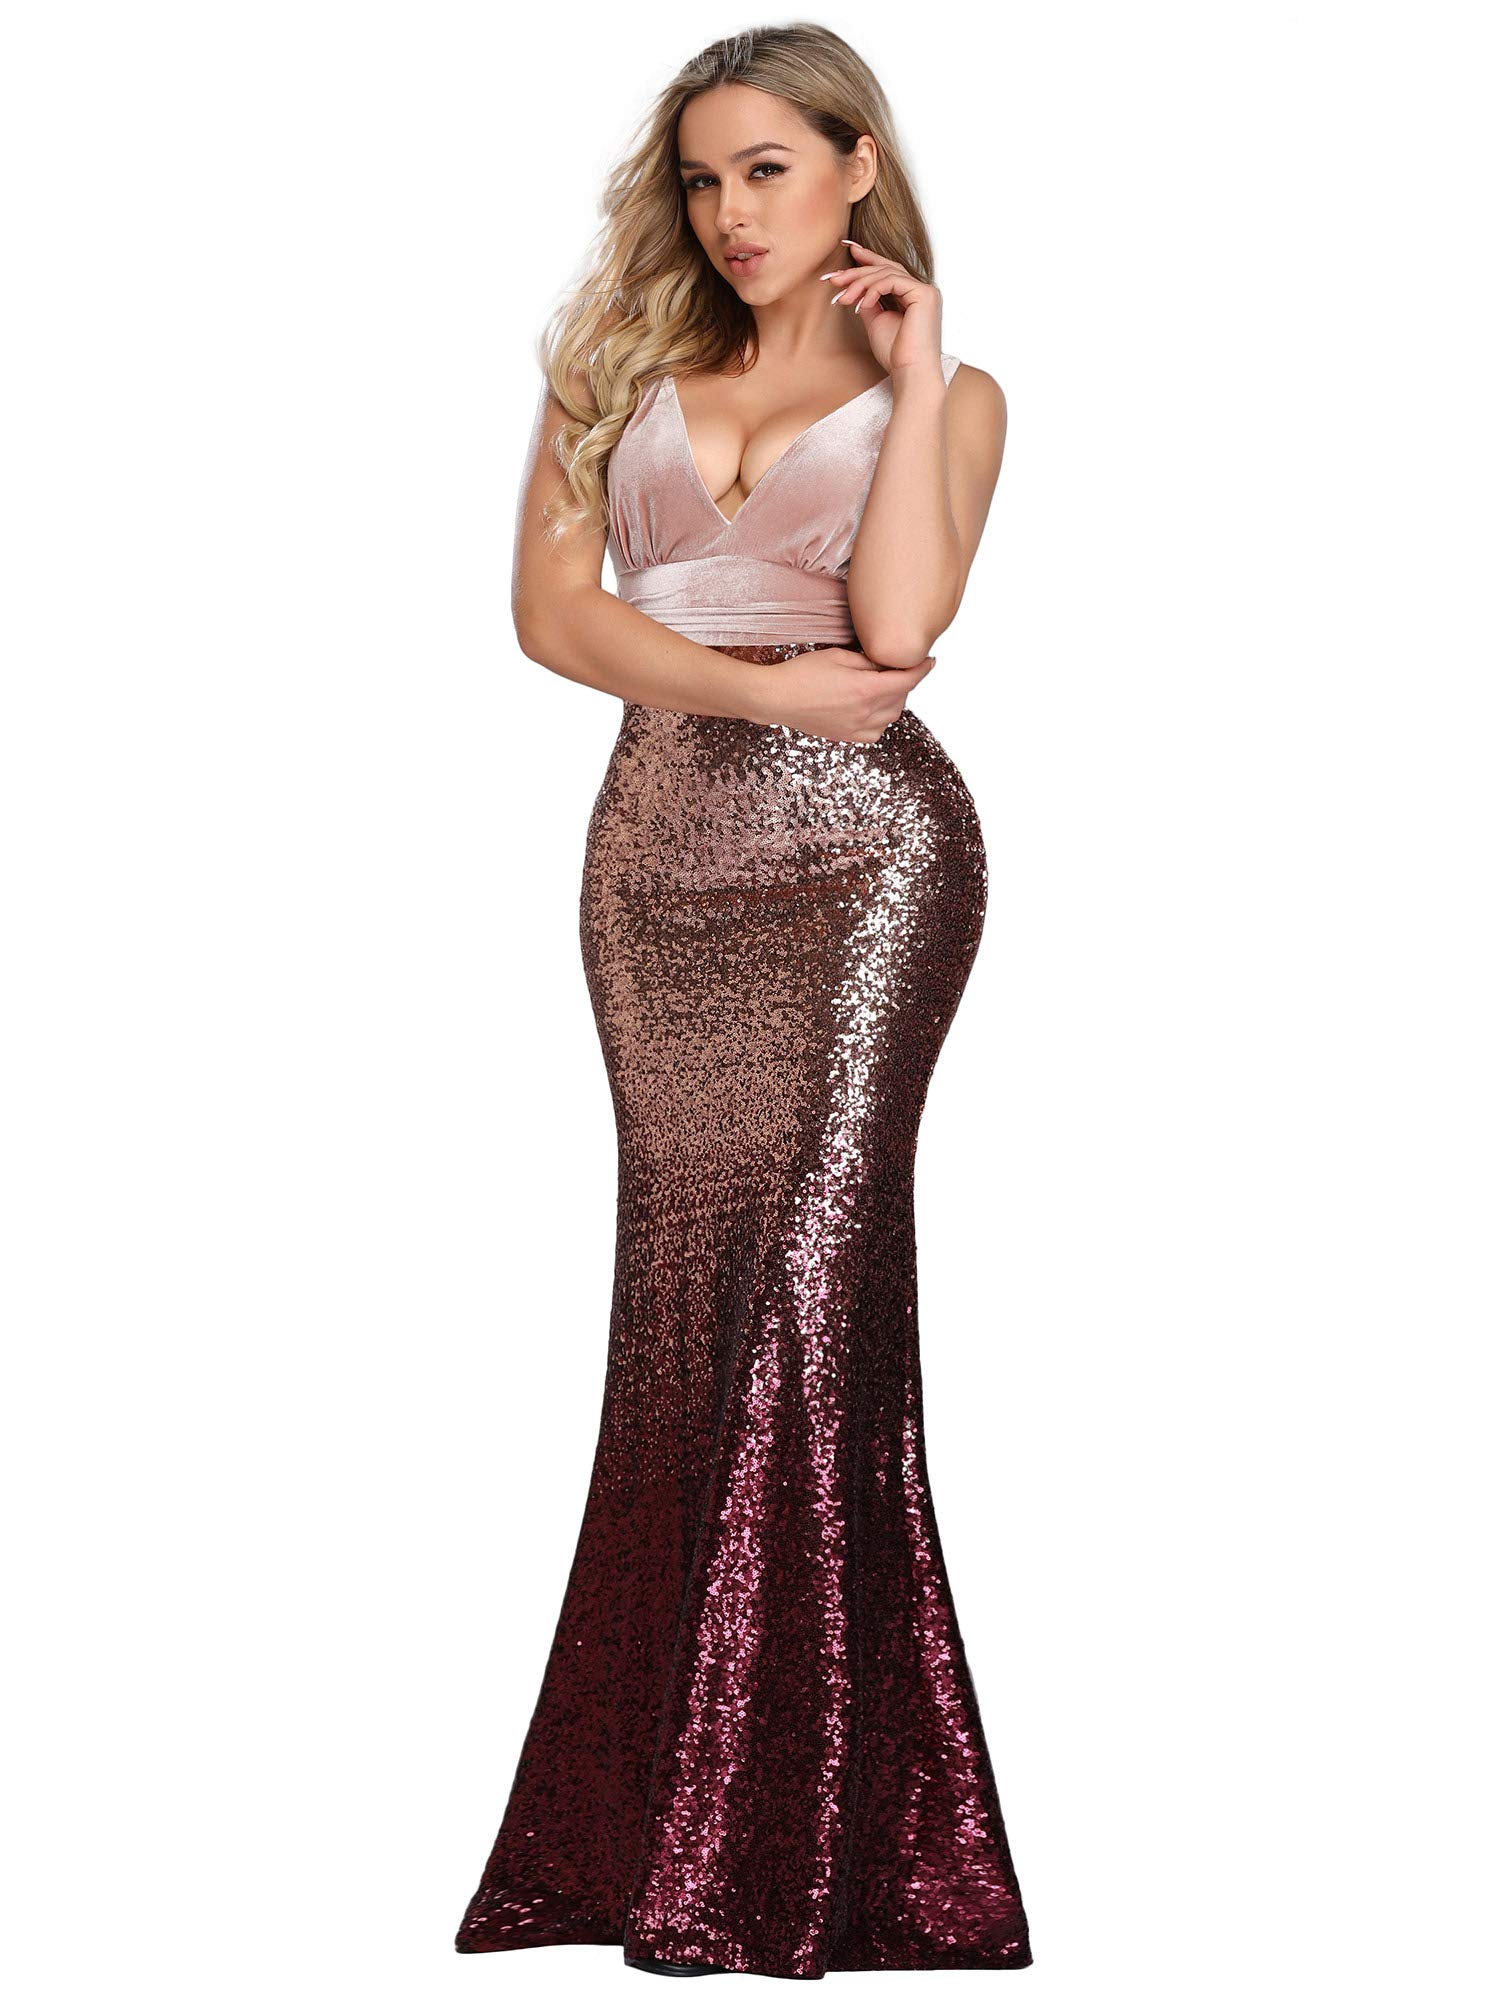 Prom Dresses - Women's V Neck Sequined Prom Banquet Party Maxi Dress